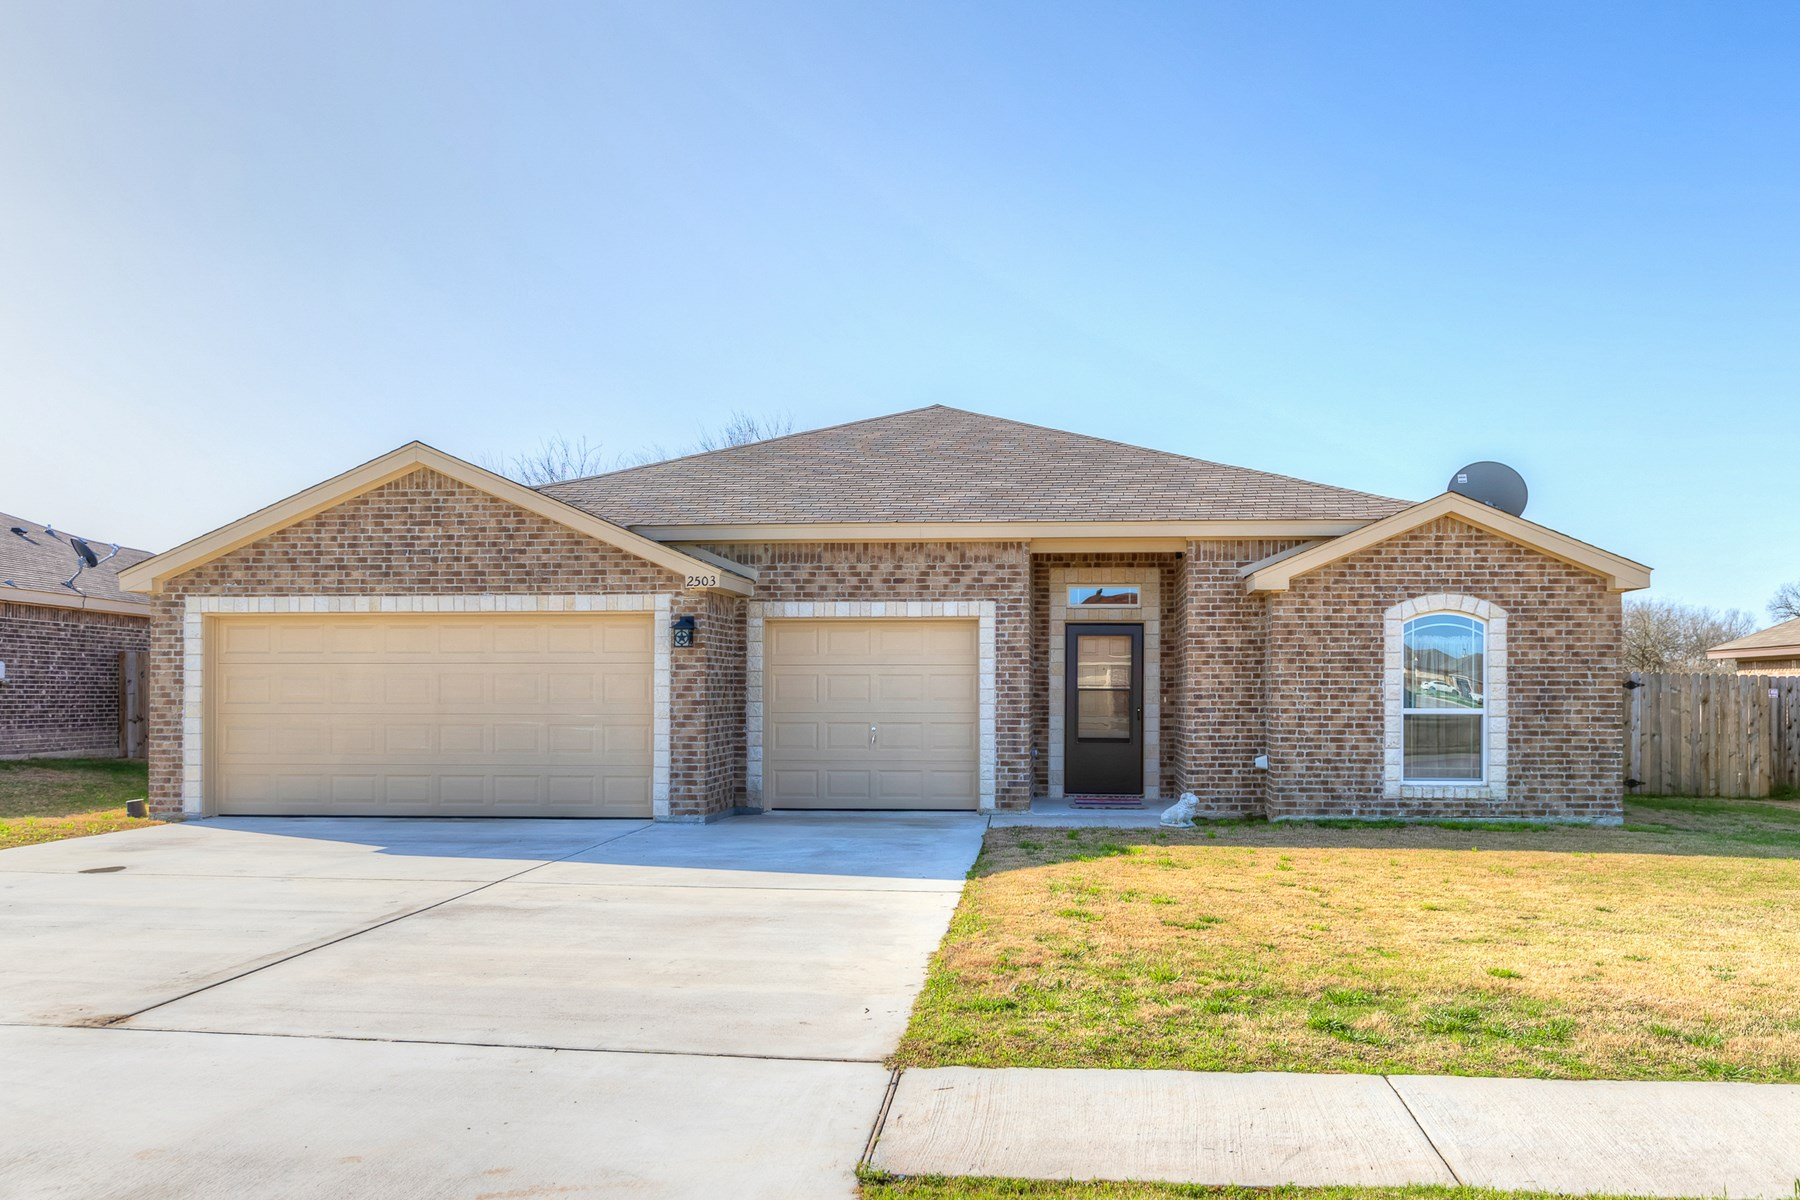 4 bed 2 bath Home for Sale Lampasas County Copperas Cove TX